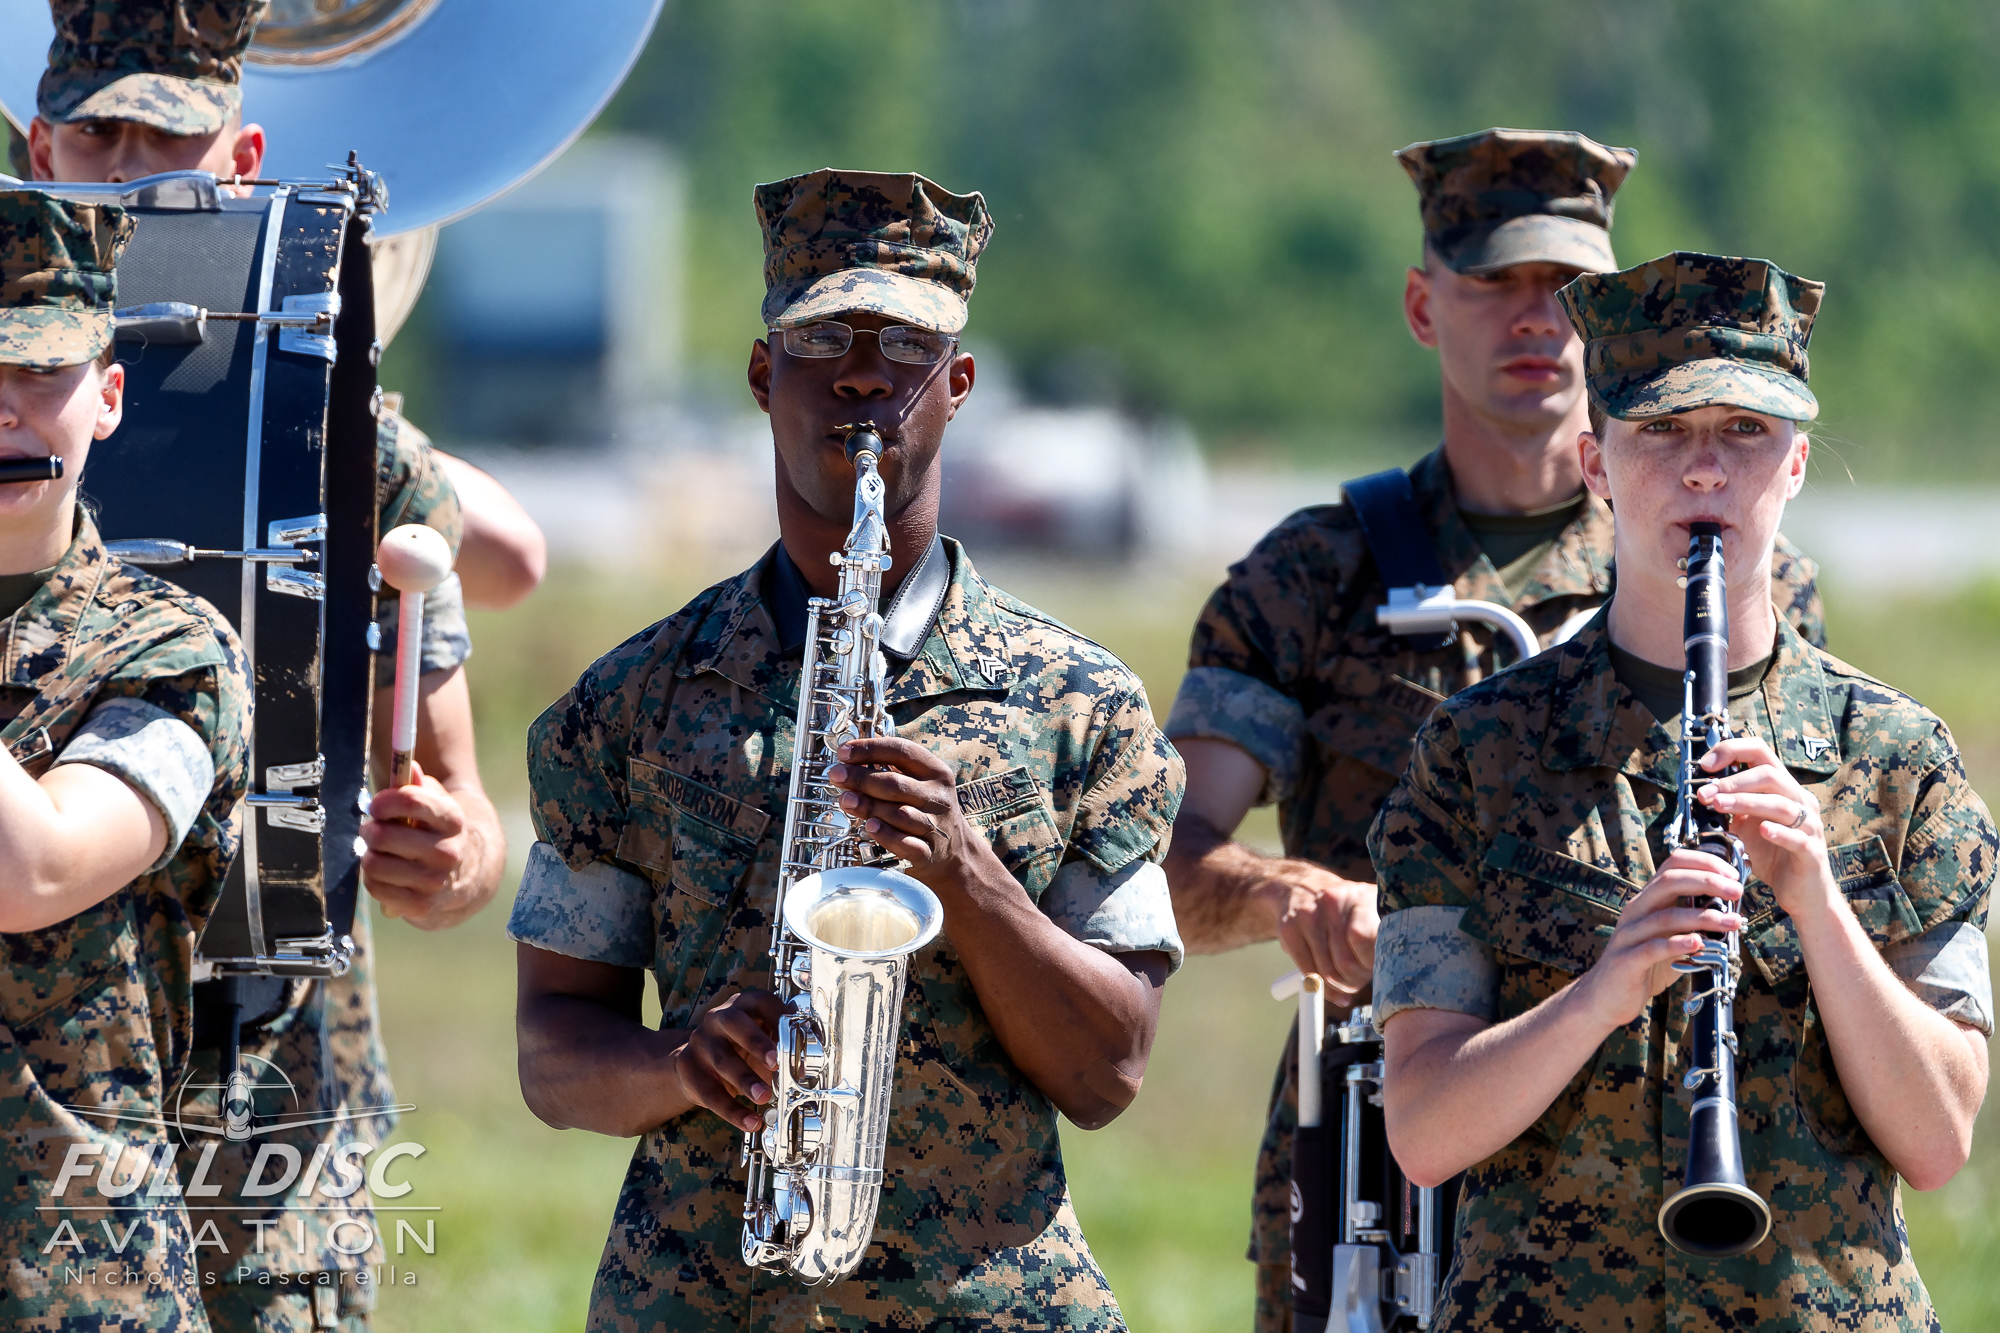 mcasbeaufort_parrisisland_marineband_nicholaspascarella_fulldiscavation_aviation_airshow.jpg